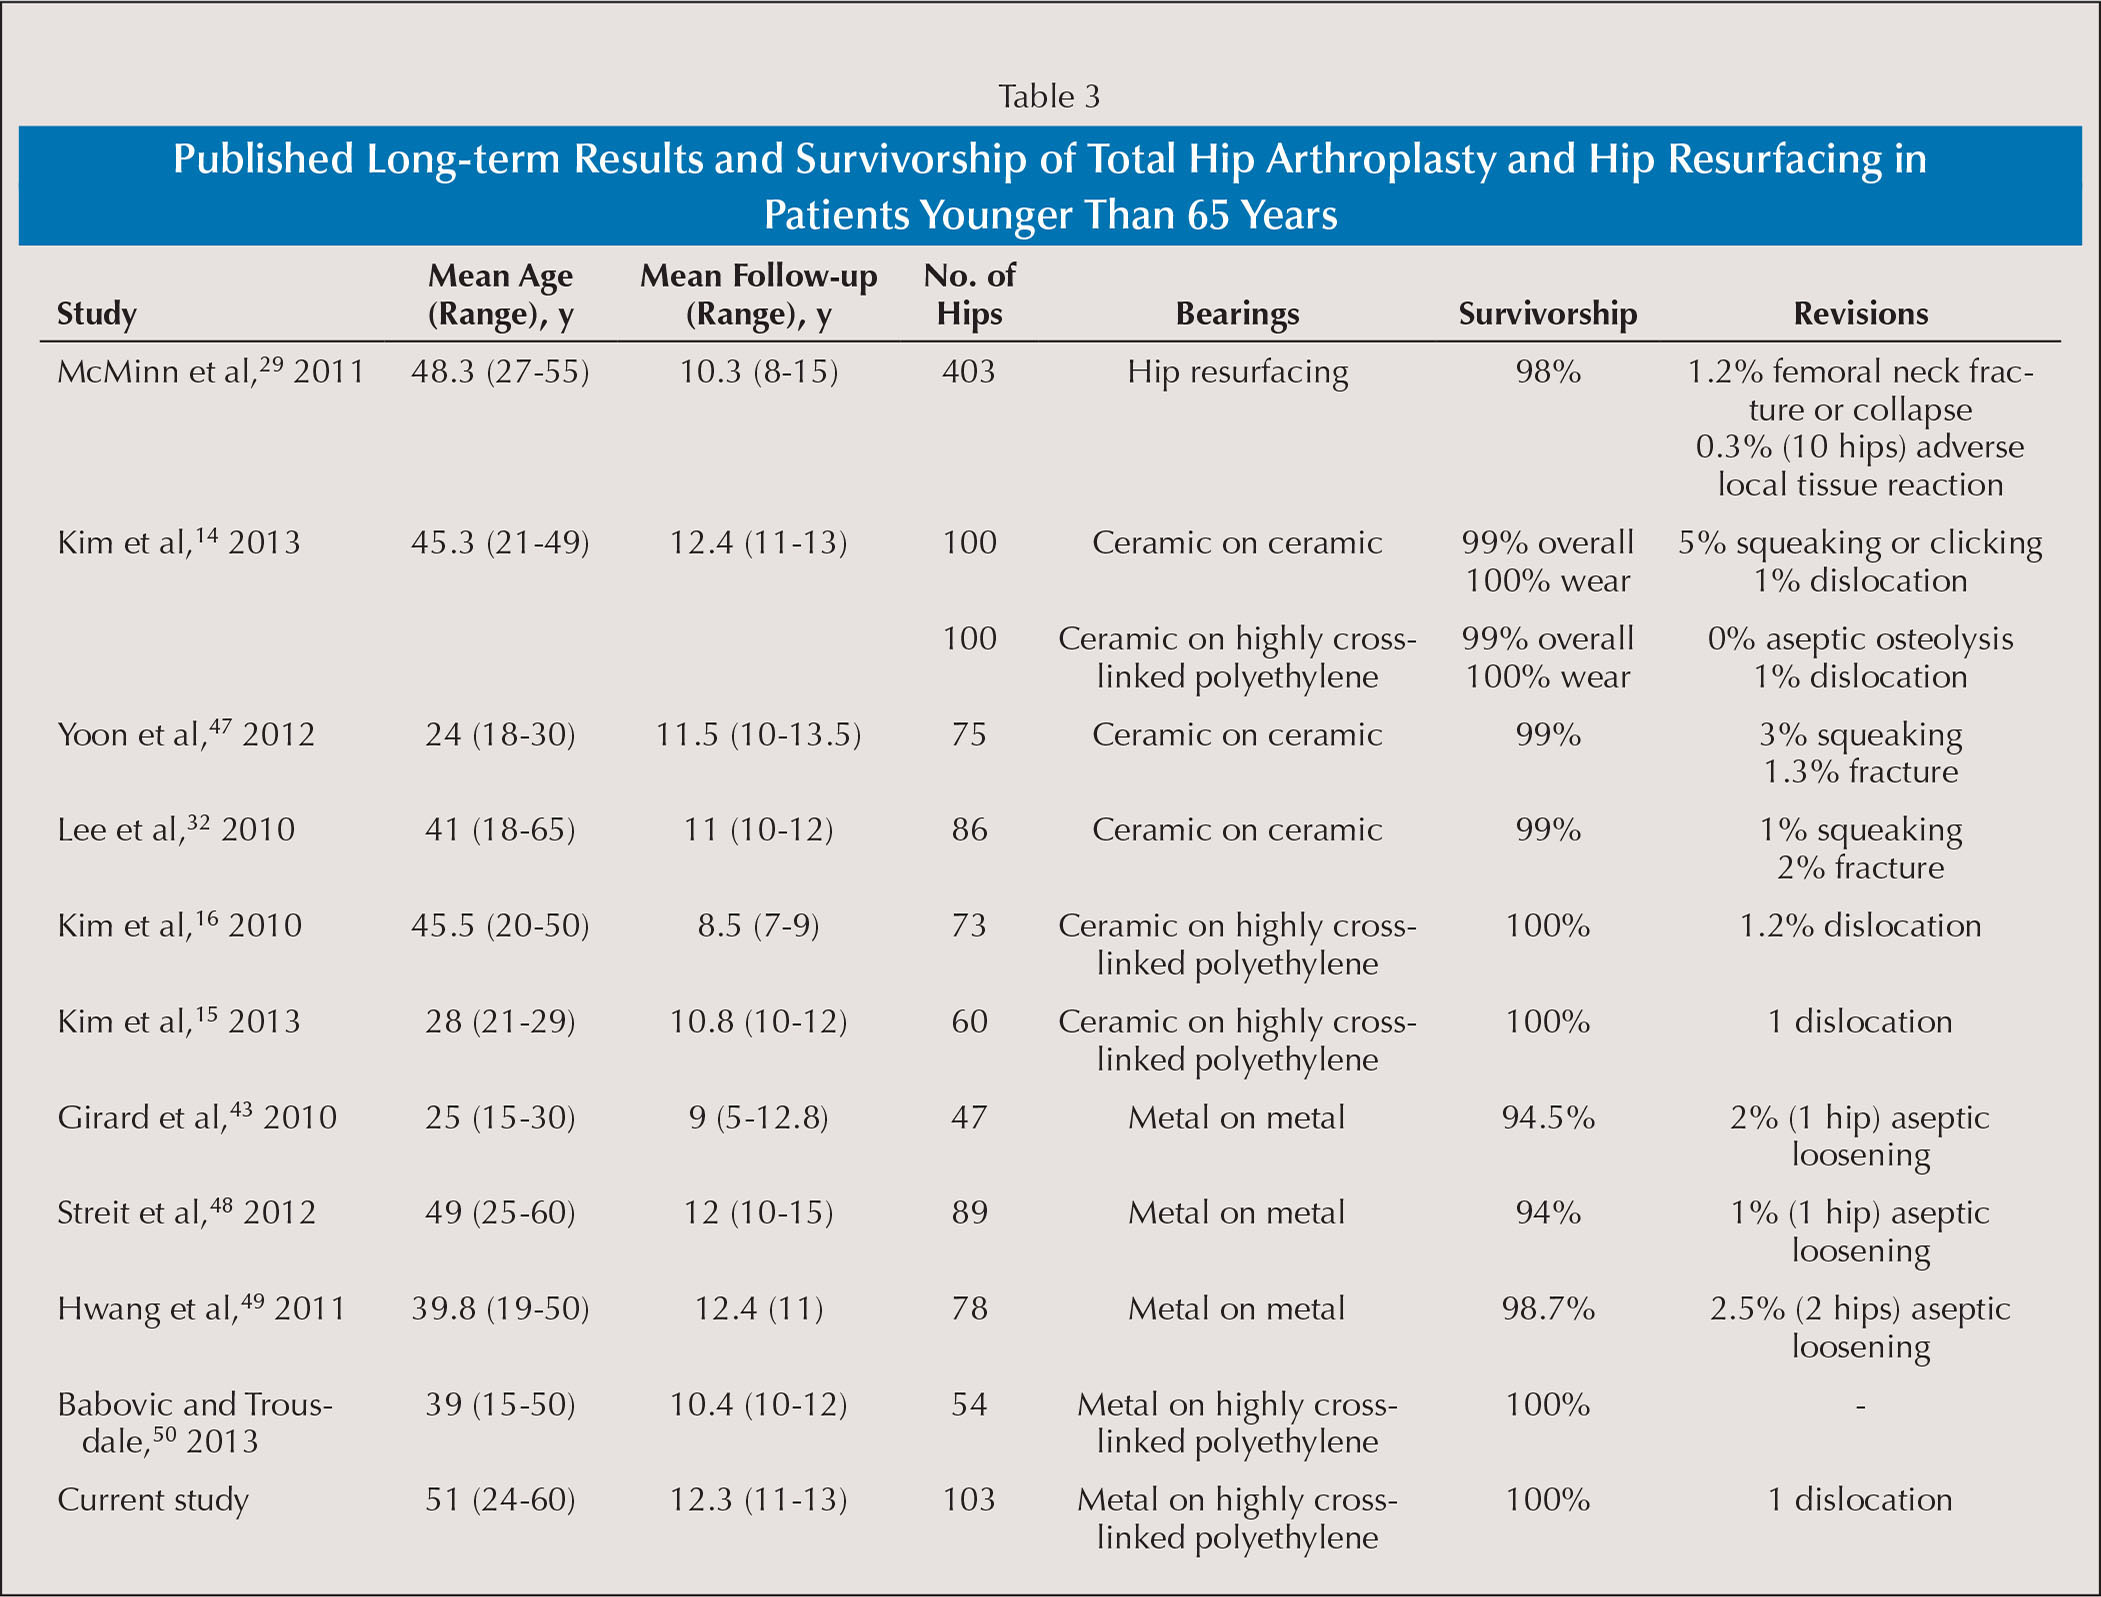 Published Long-term Results and Survivorship of Total Hip Arthroplasty and Hip Resurfacing in Patients Younger Than 65 Years